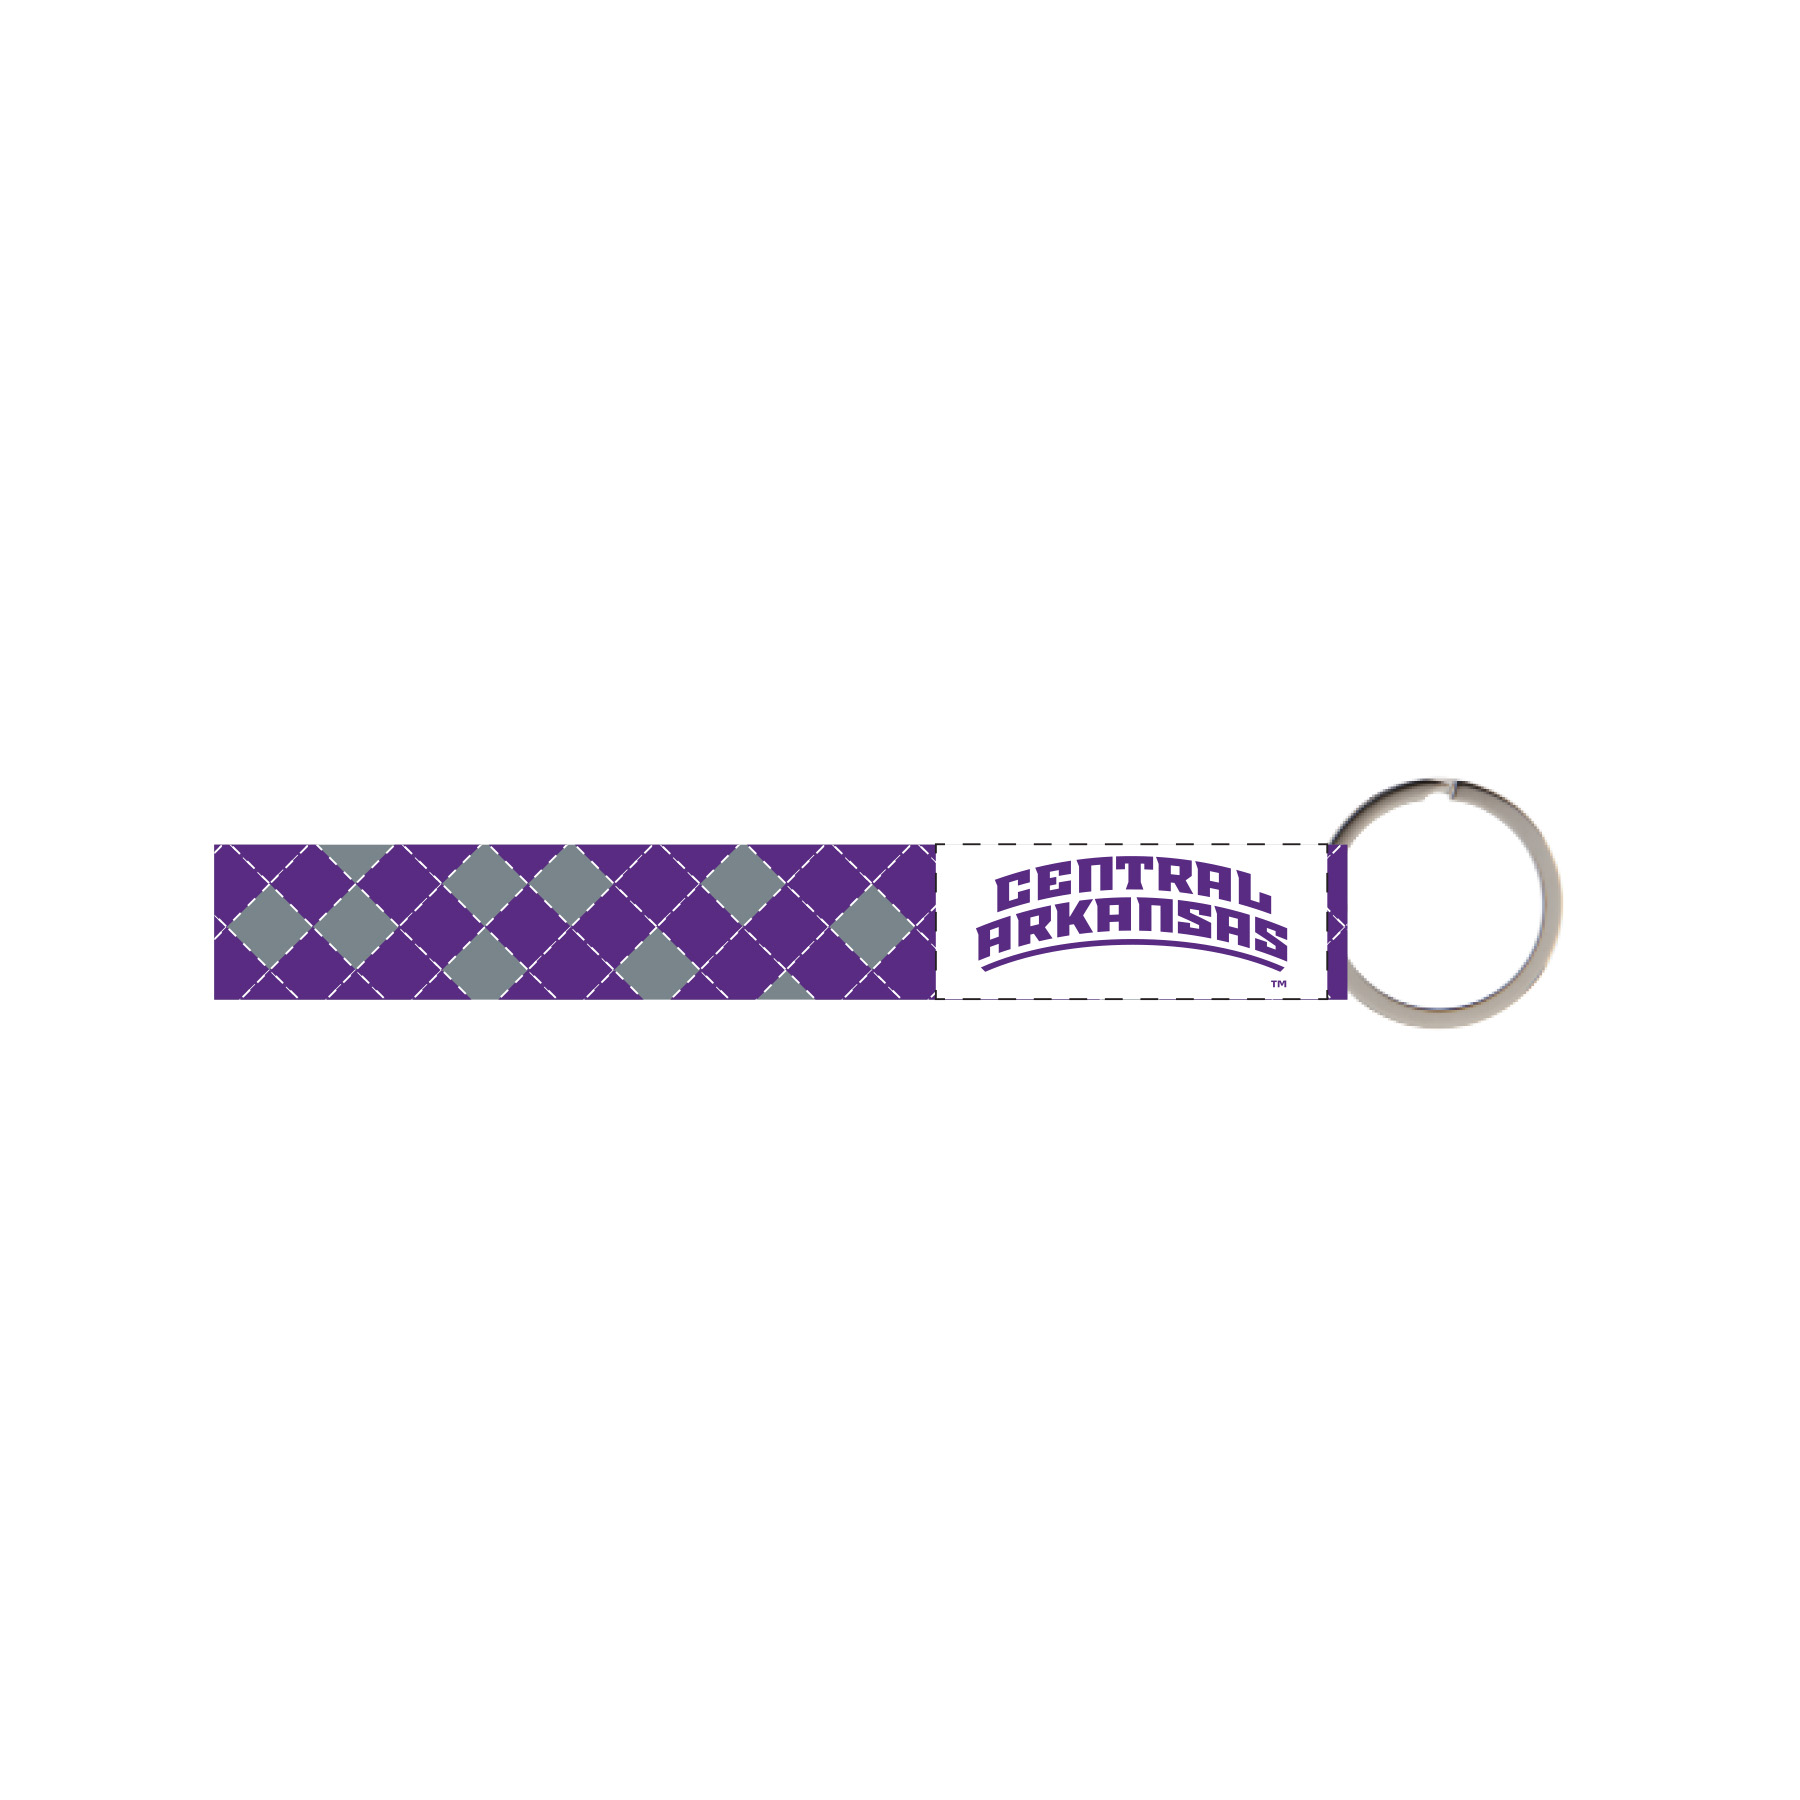 Braided Central Arkansas Wristlet